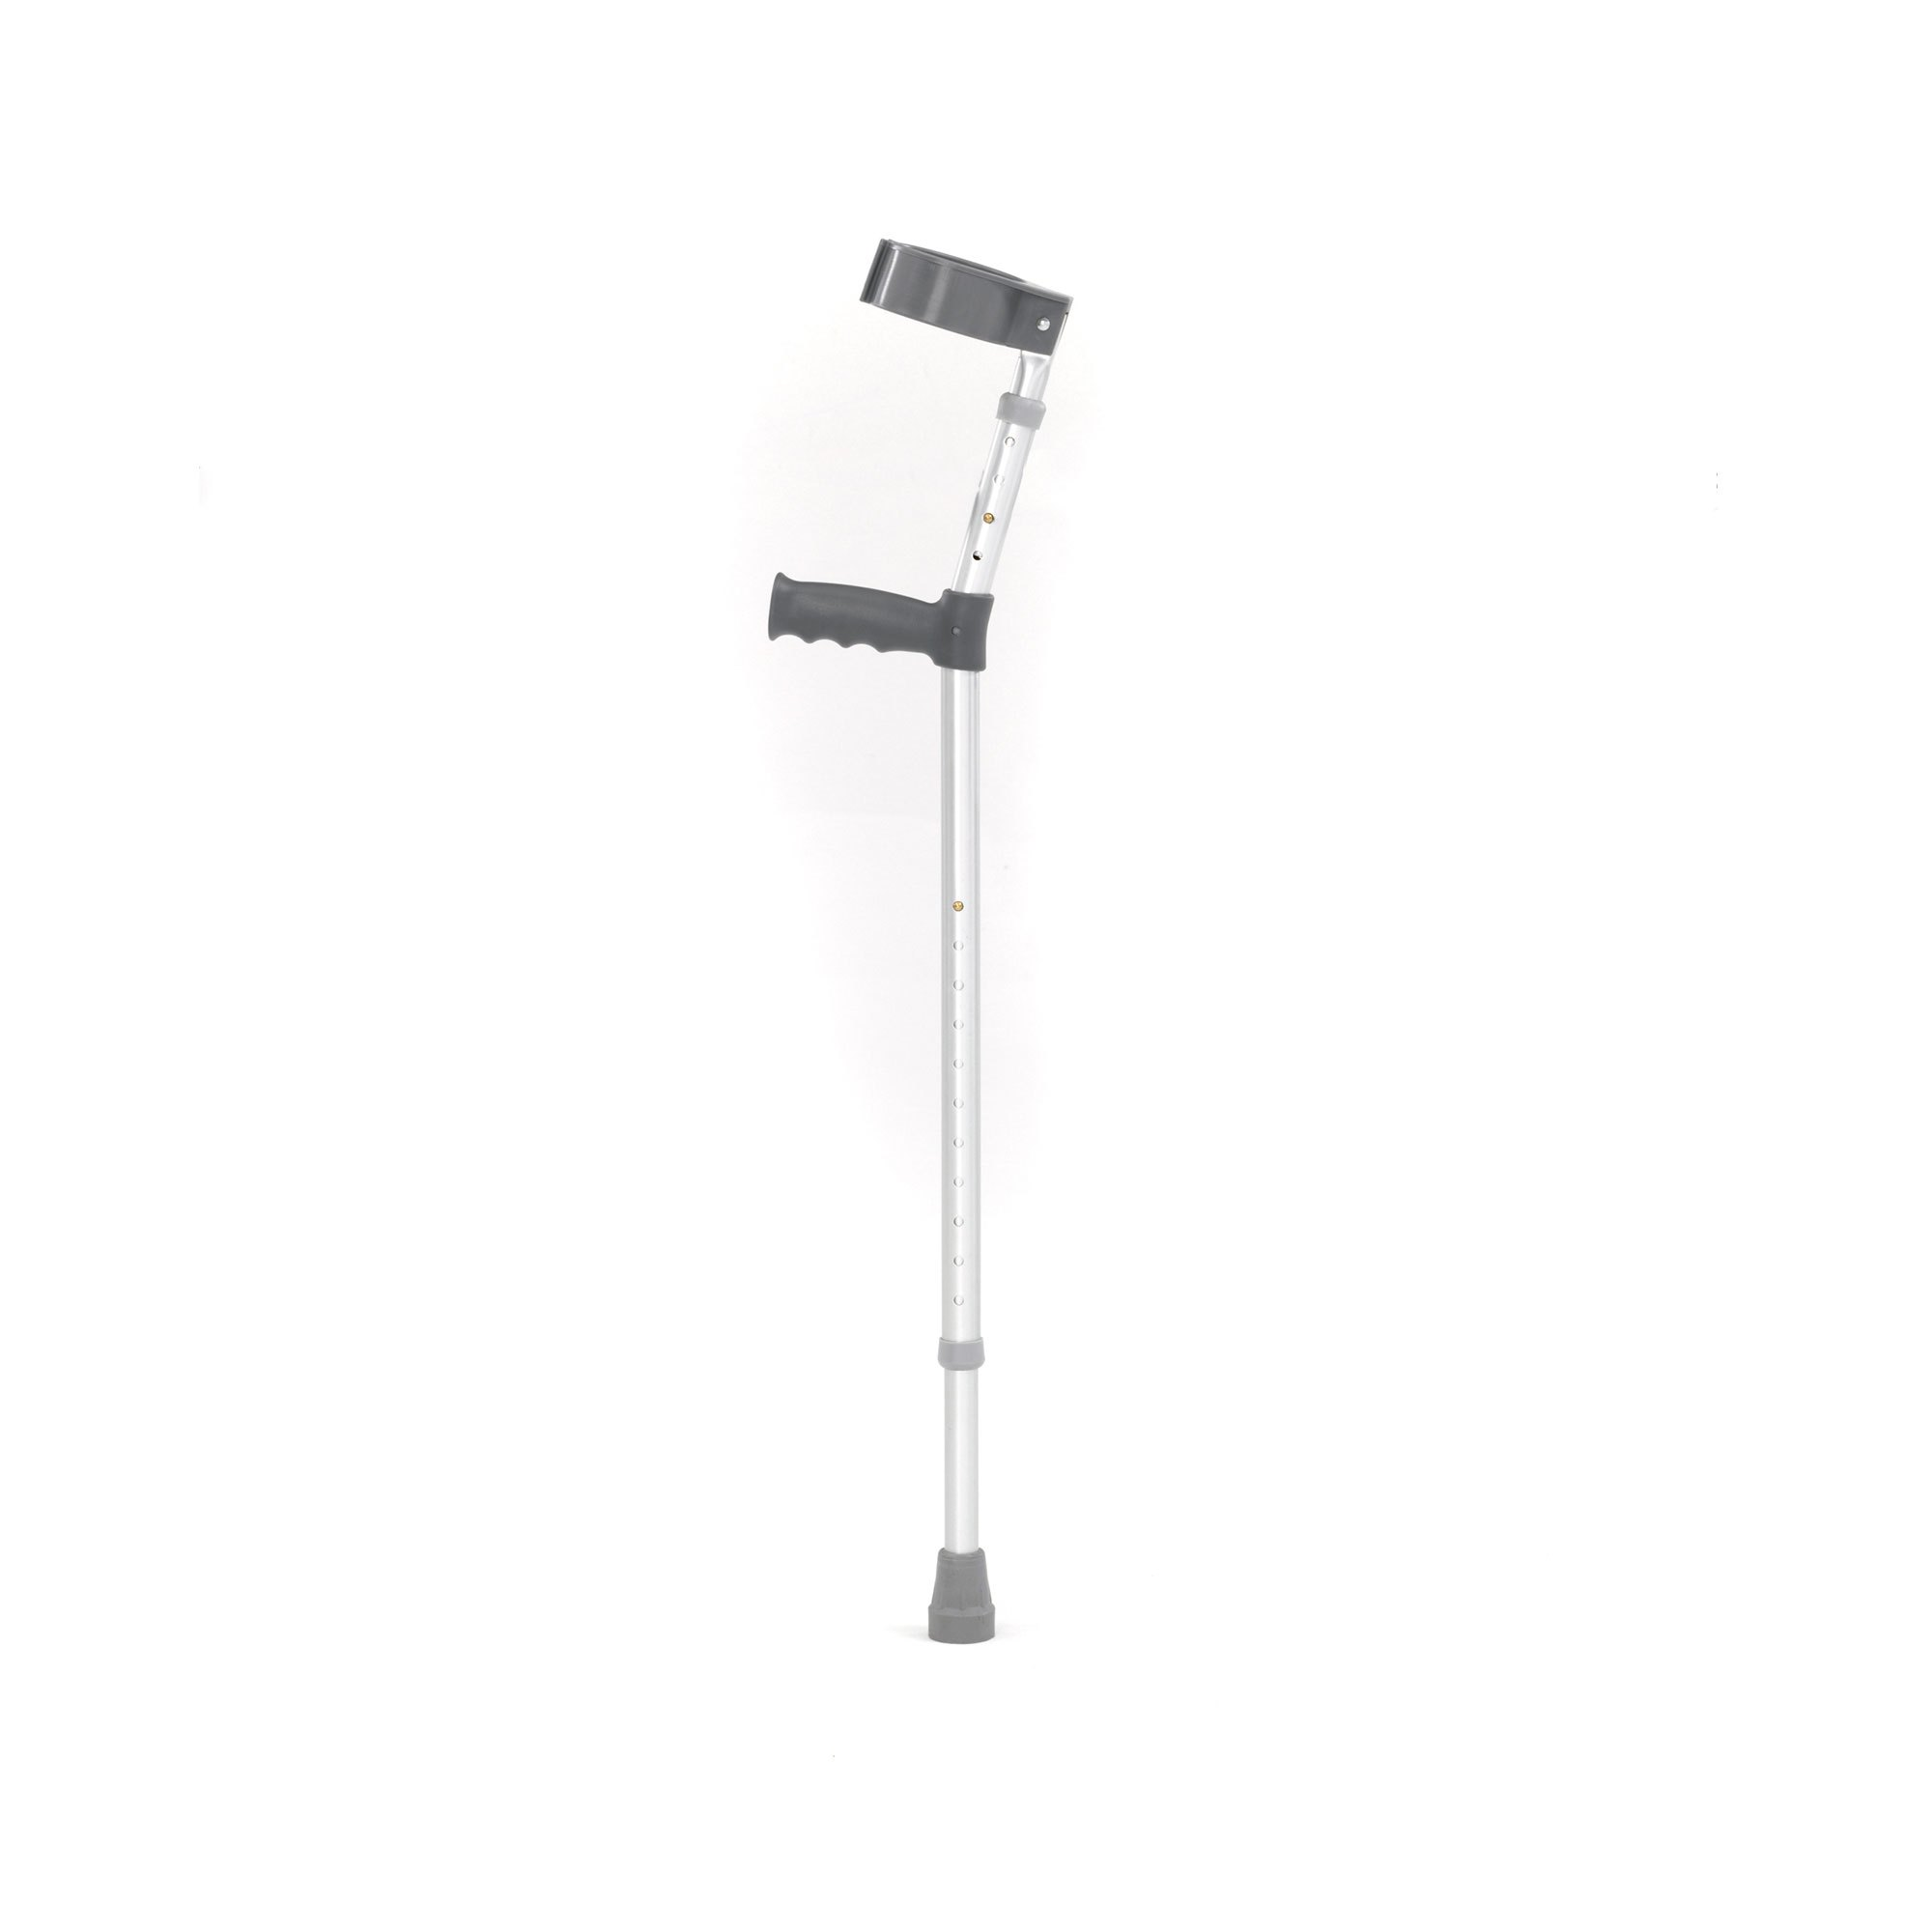 CRUTCHES DOUBLE ADJUSTABLE PAIR EX LONG